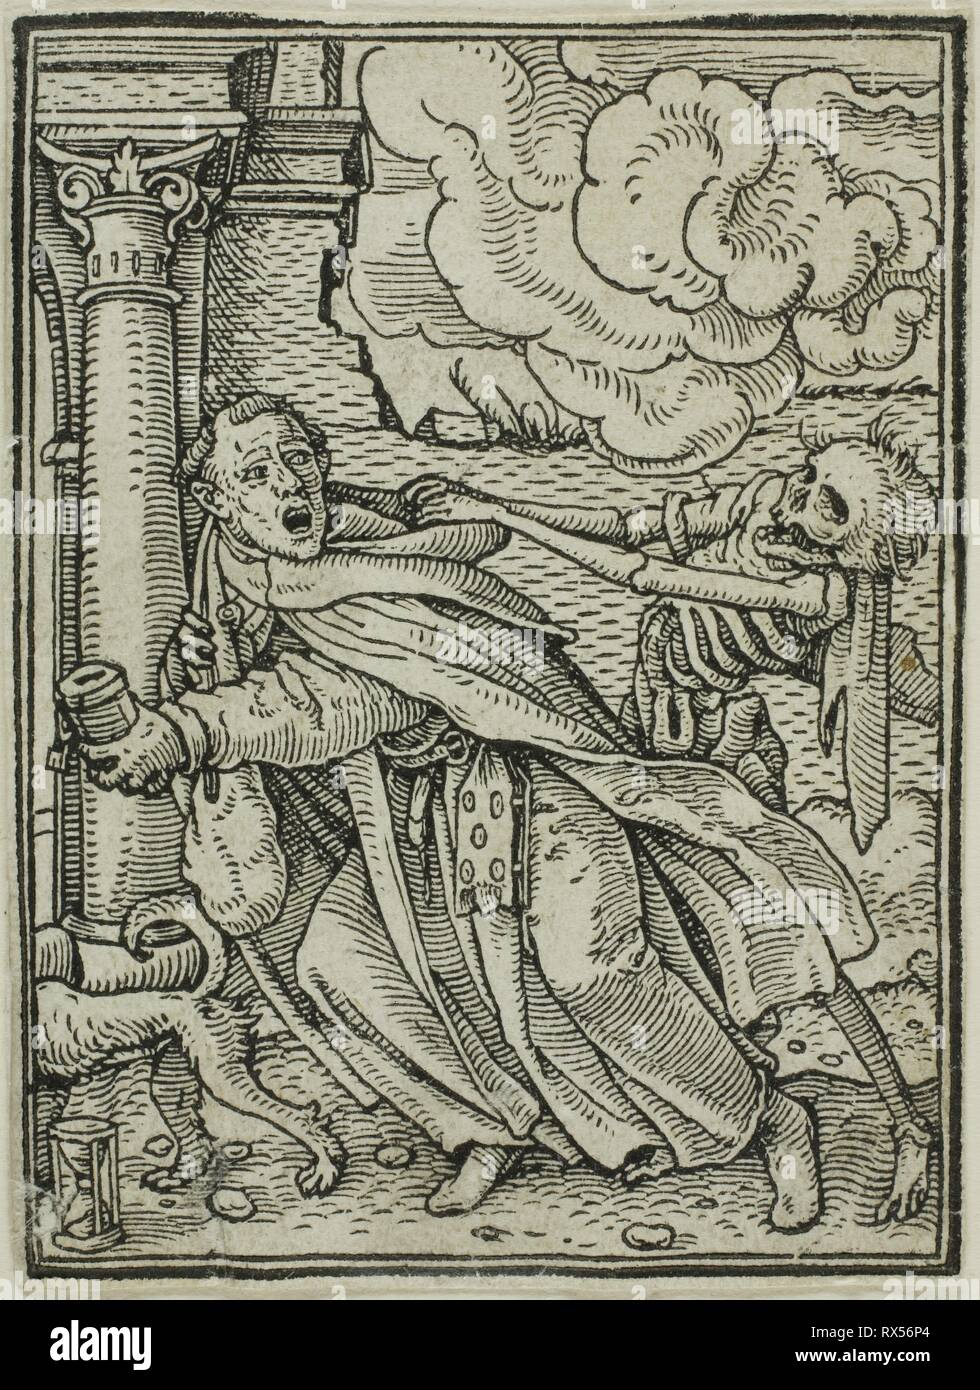 The Monk. Hans Holbein, the younger; German, 1497-1543. Date: 1517-1543. Dimensions: 66 x 50 mm. Woodcut on paper. Origin: Germany. Museum: The Chicago Art Institute. - Stock Image